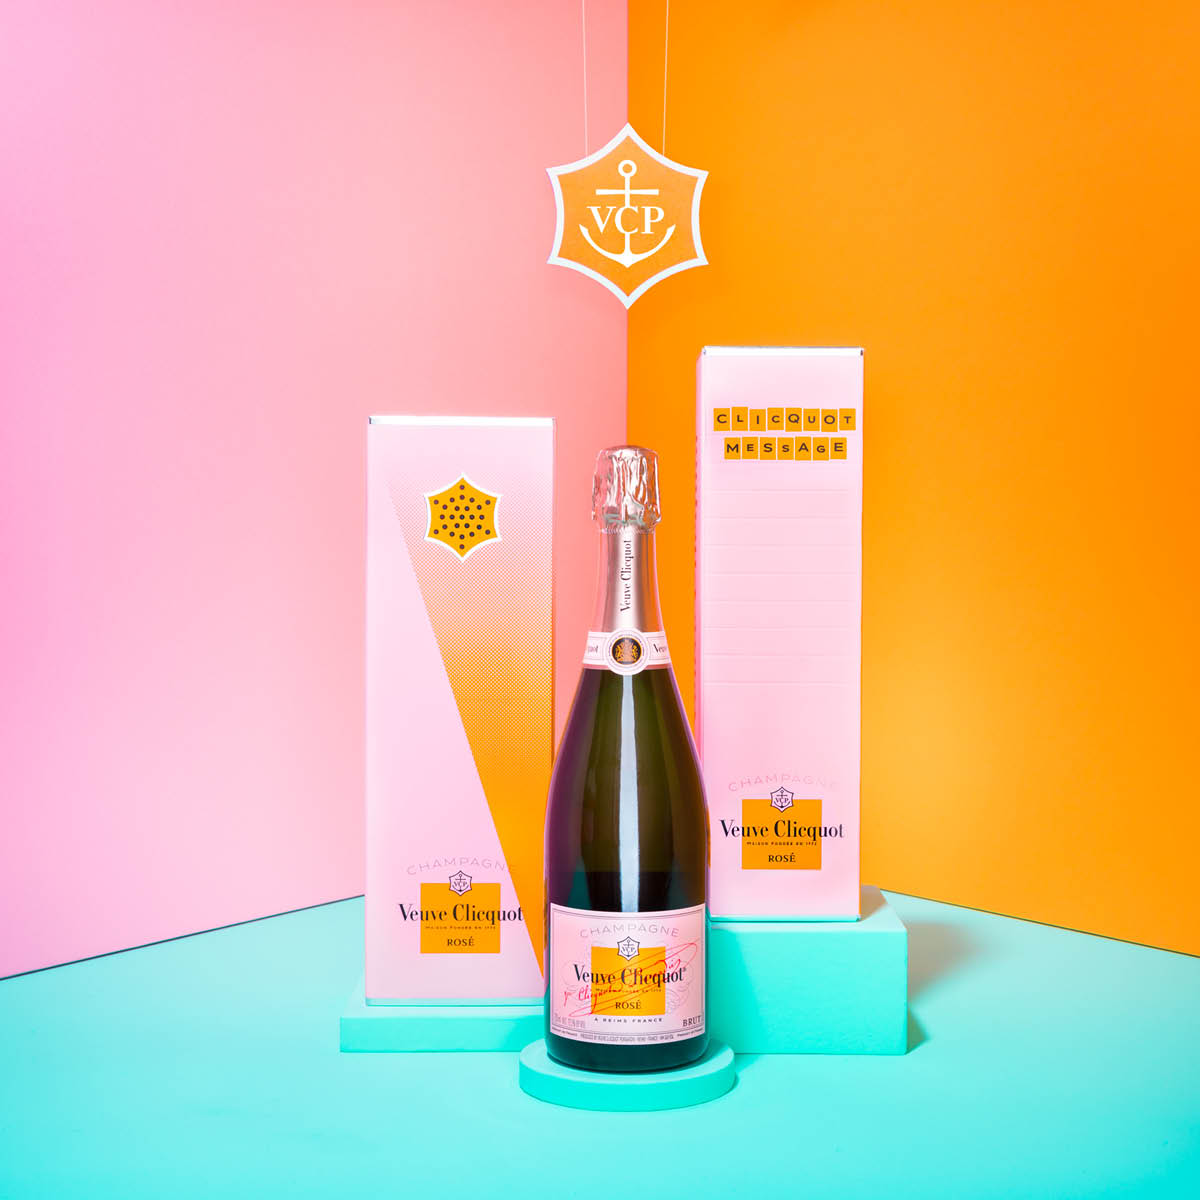 veuve clicquot - Group